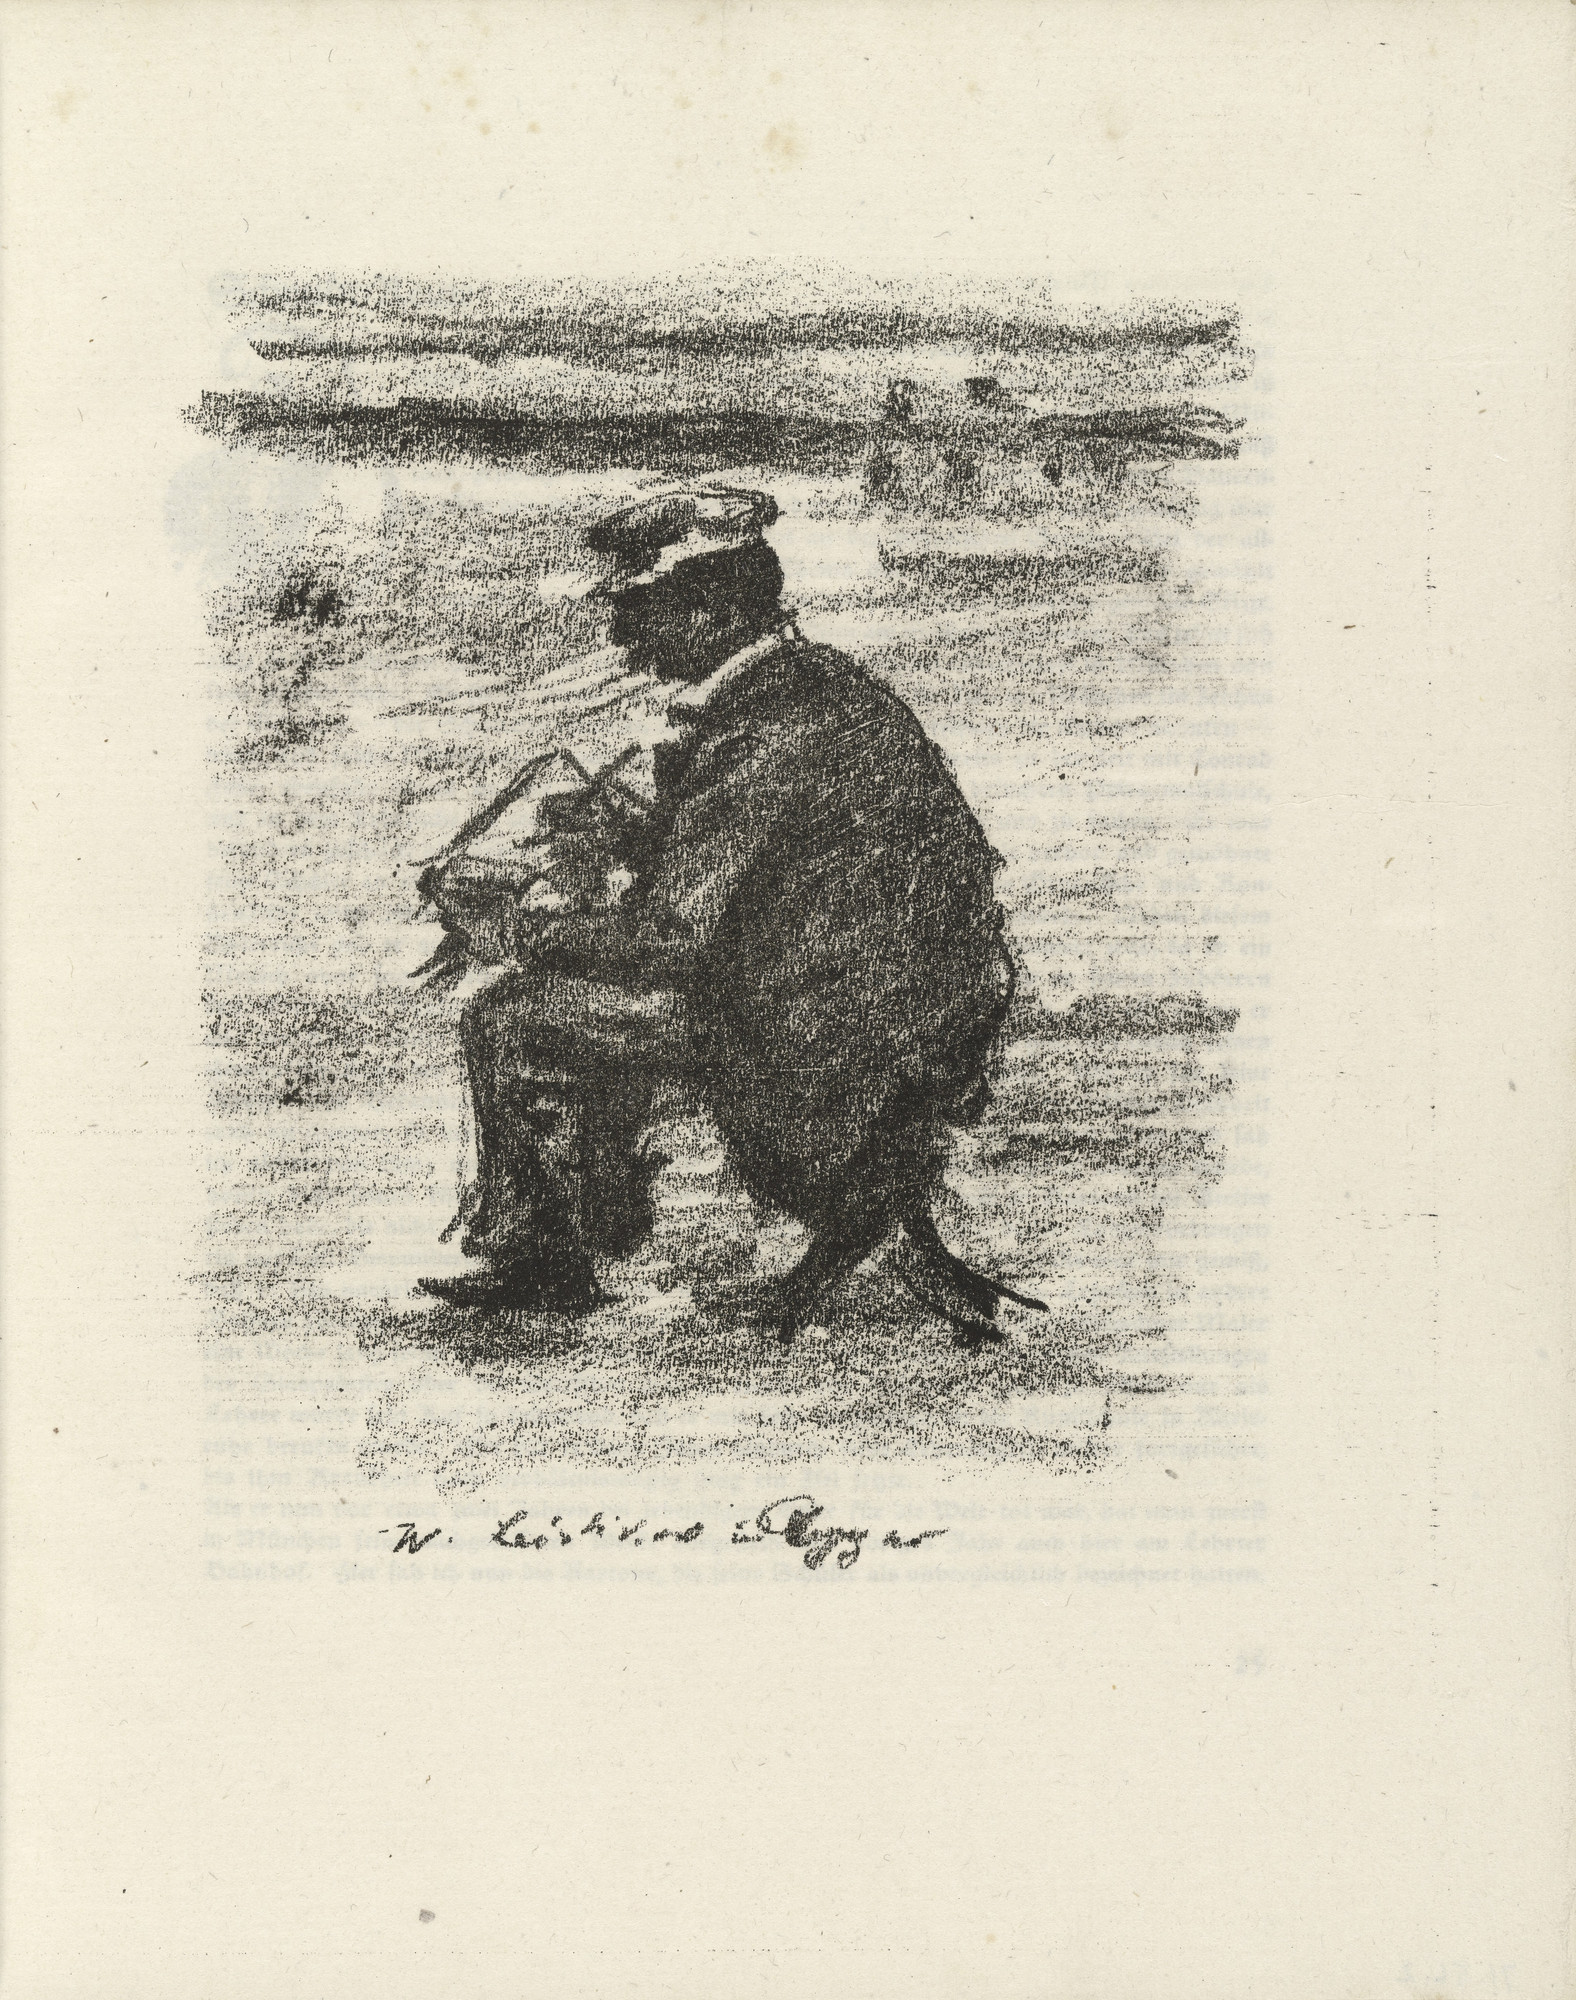 Lovis Corinth. Walter Leistikow (plate facing page 24) from Gesammelte Schriften (Collected Writings). 1920